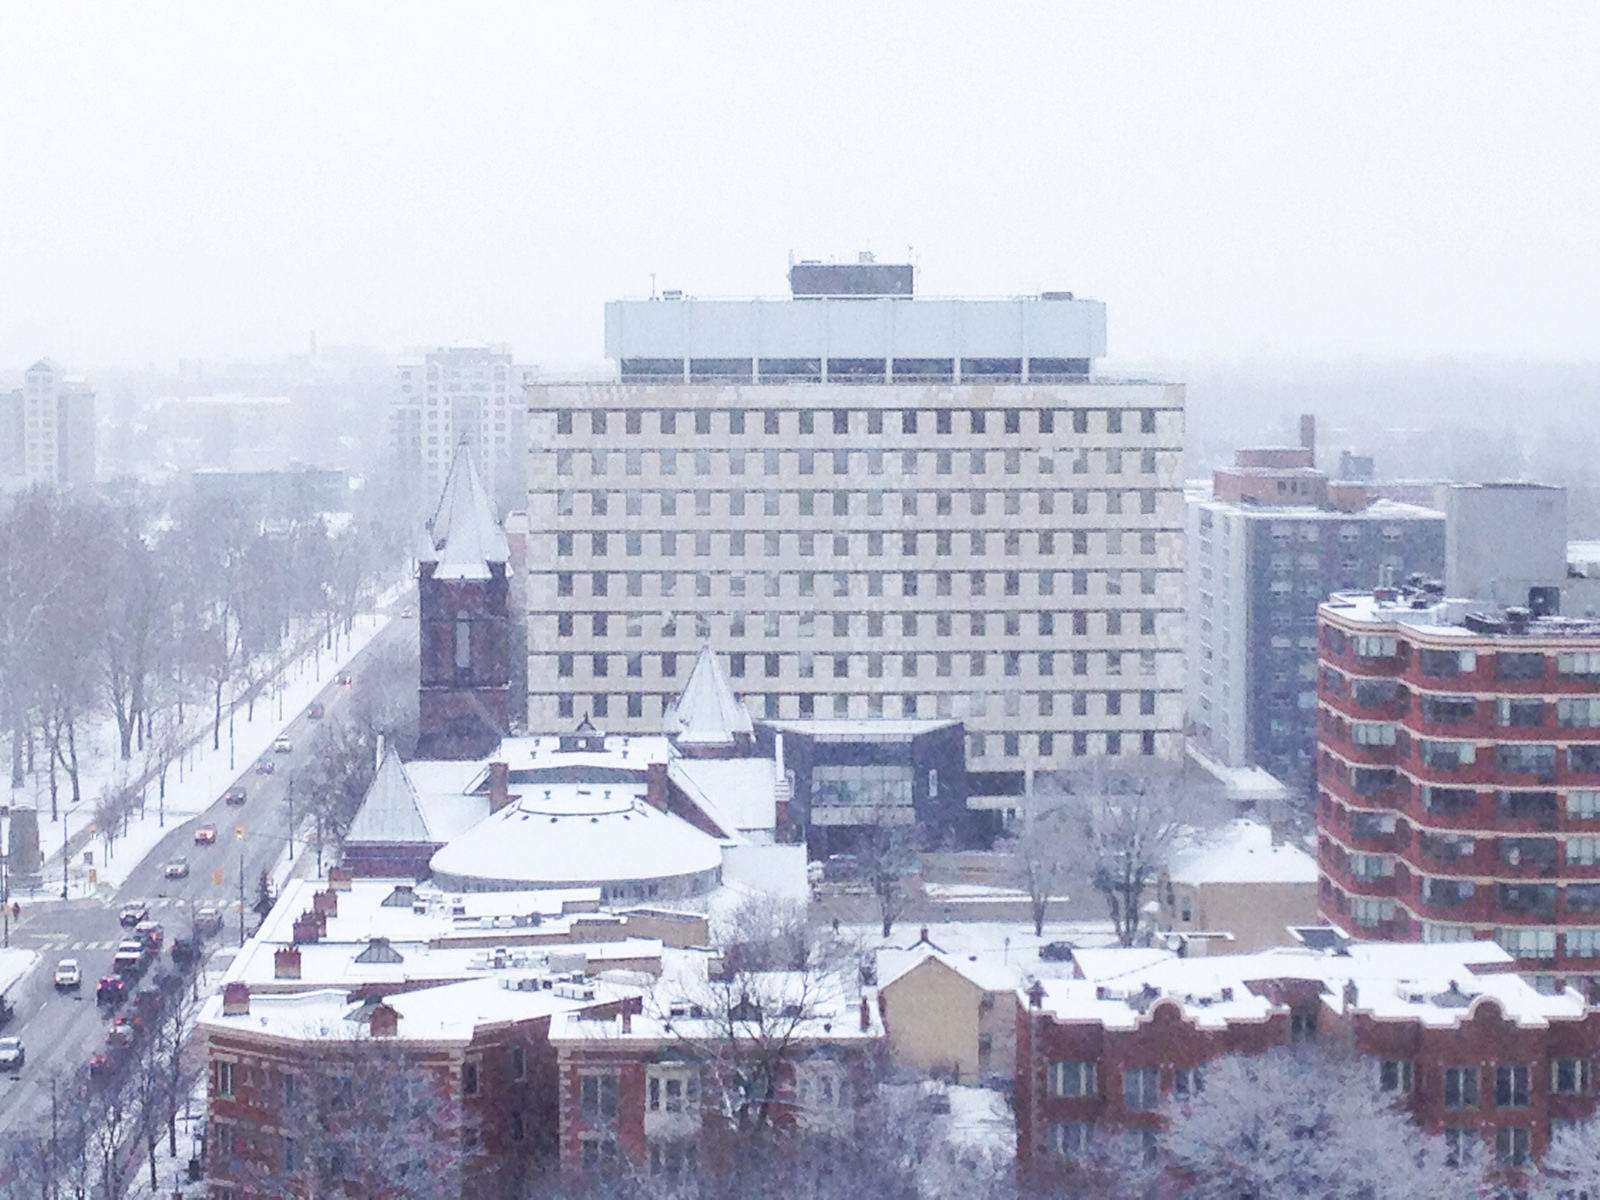 London office buildings under snow